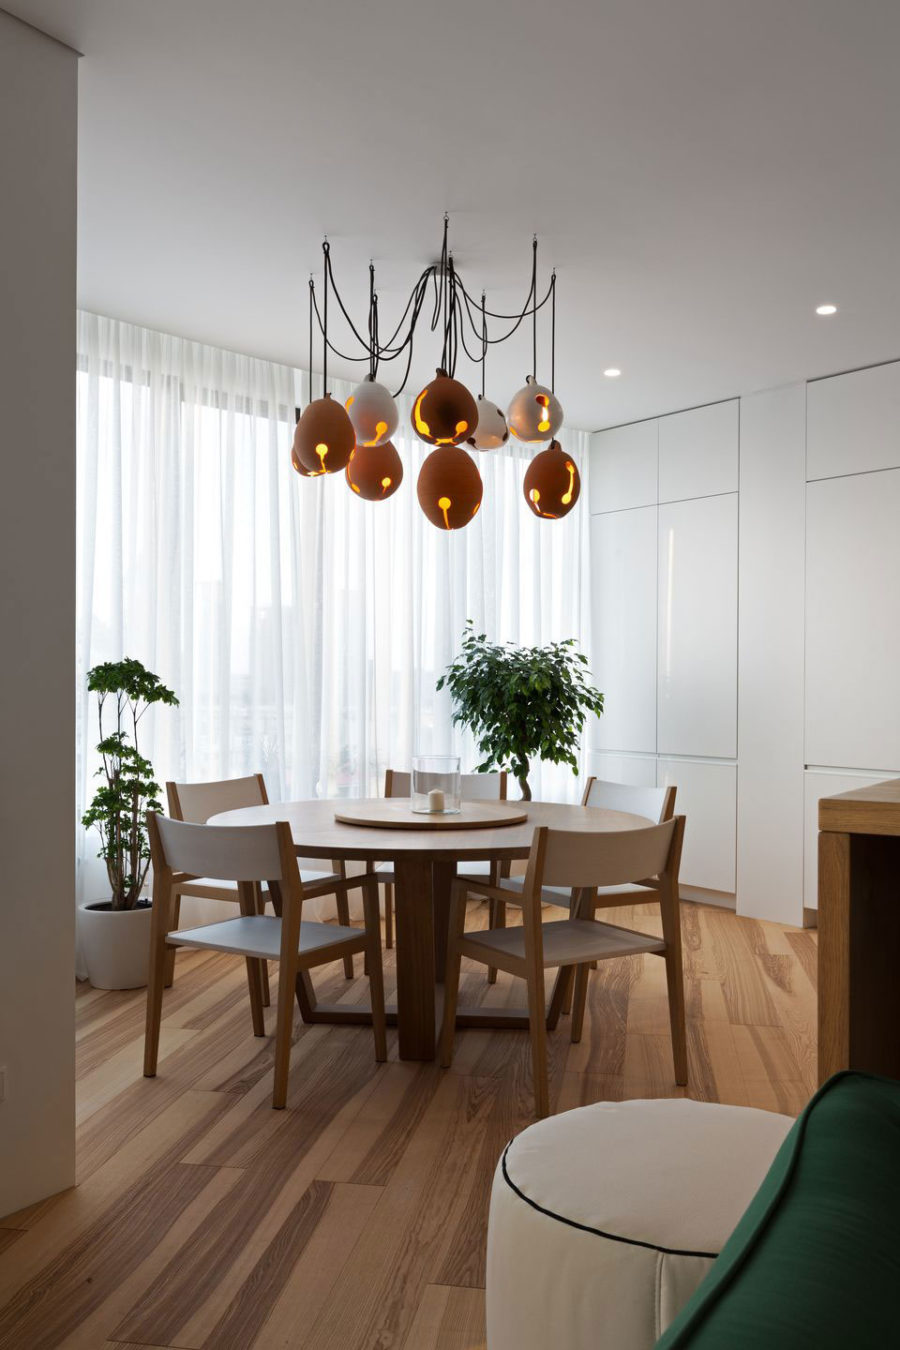 Minimal interior gets a pop with unique accessories like these dining room lights